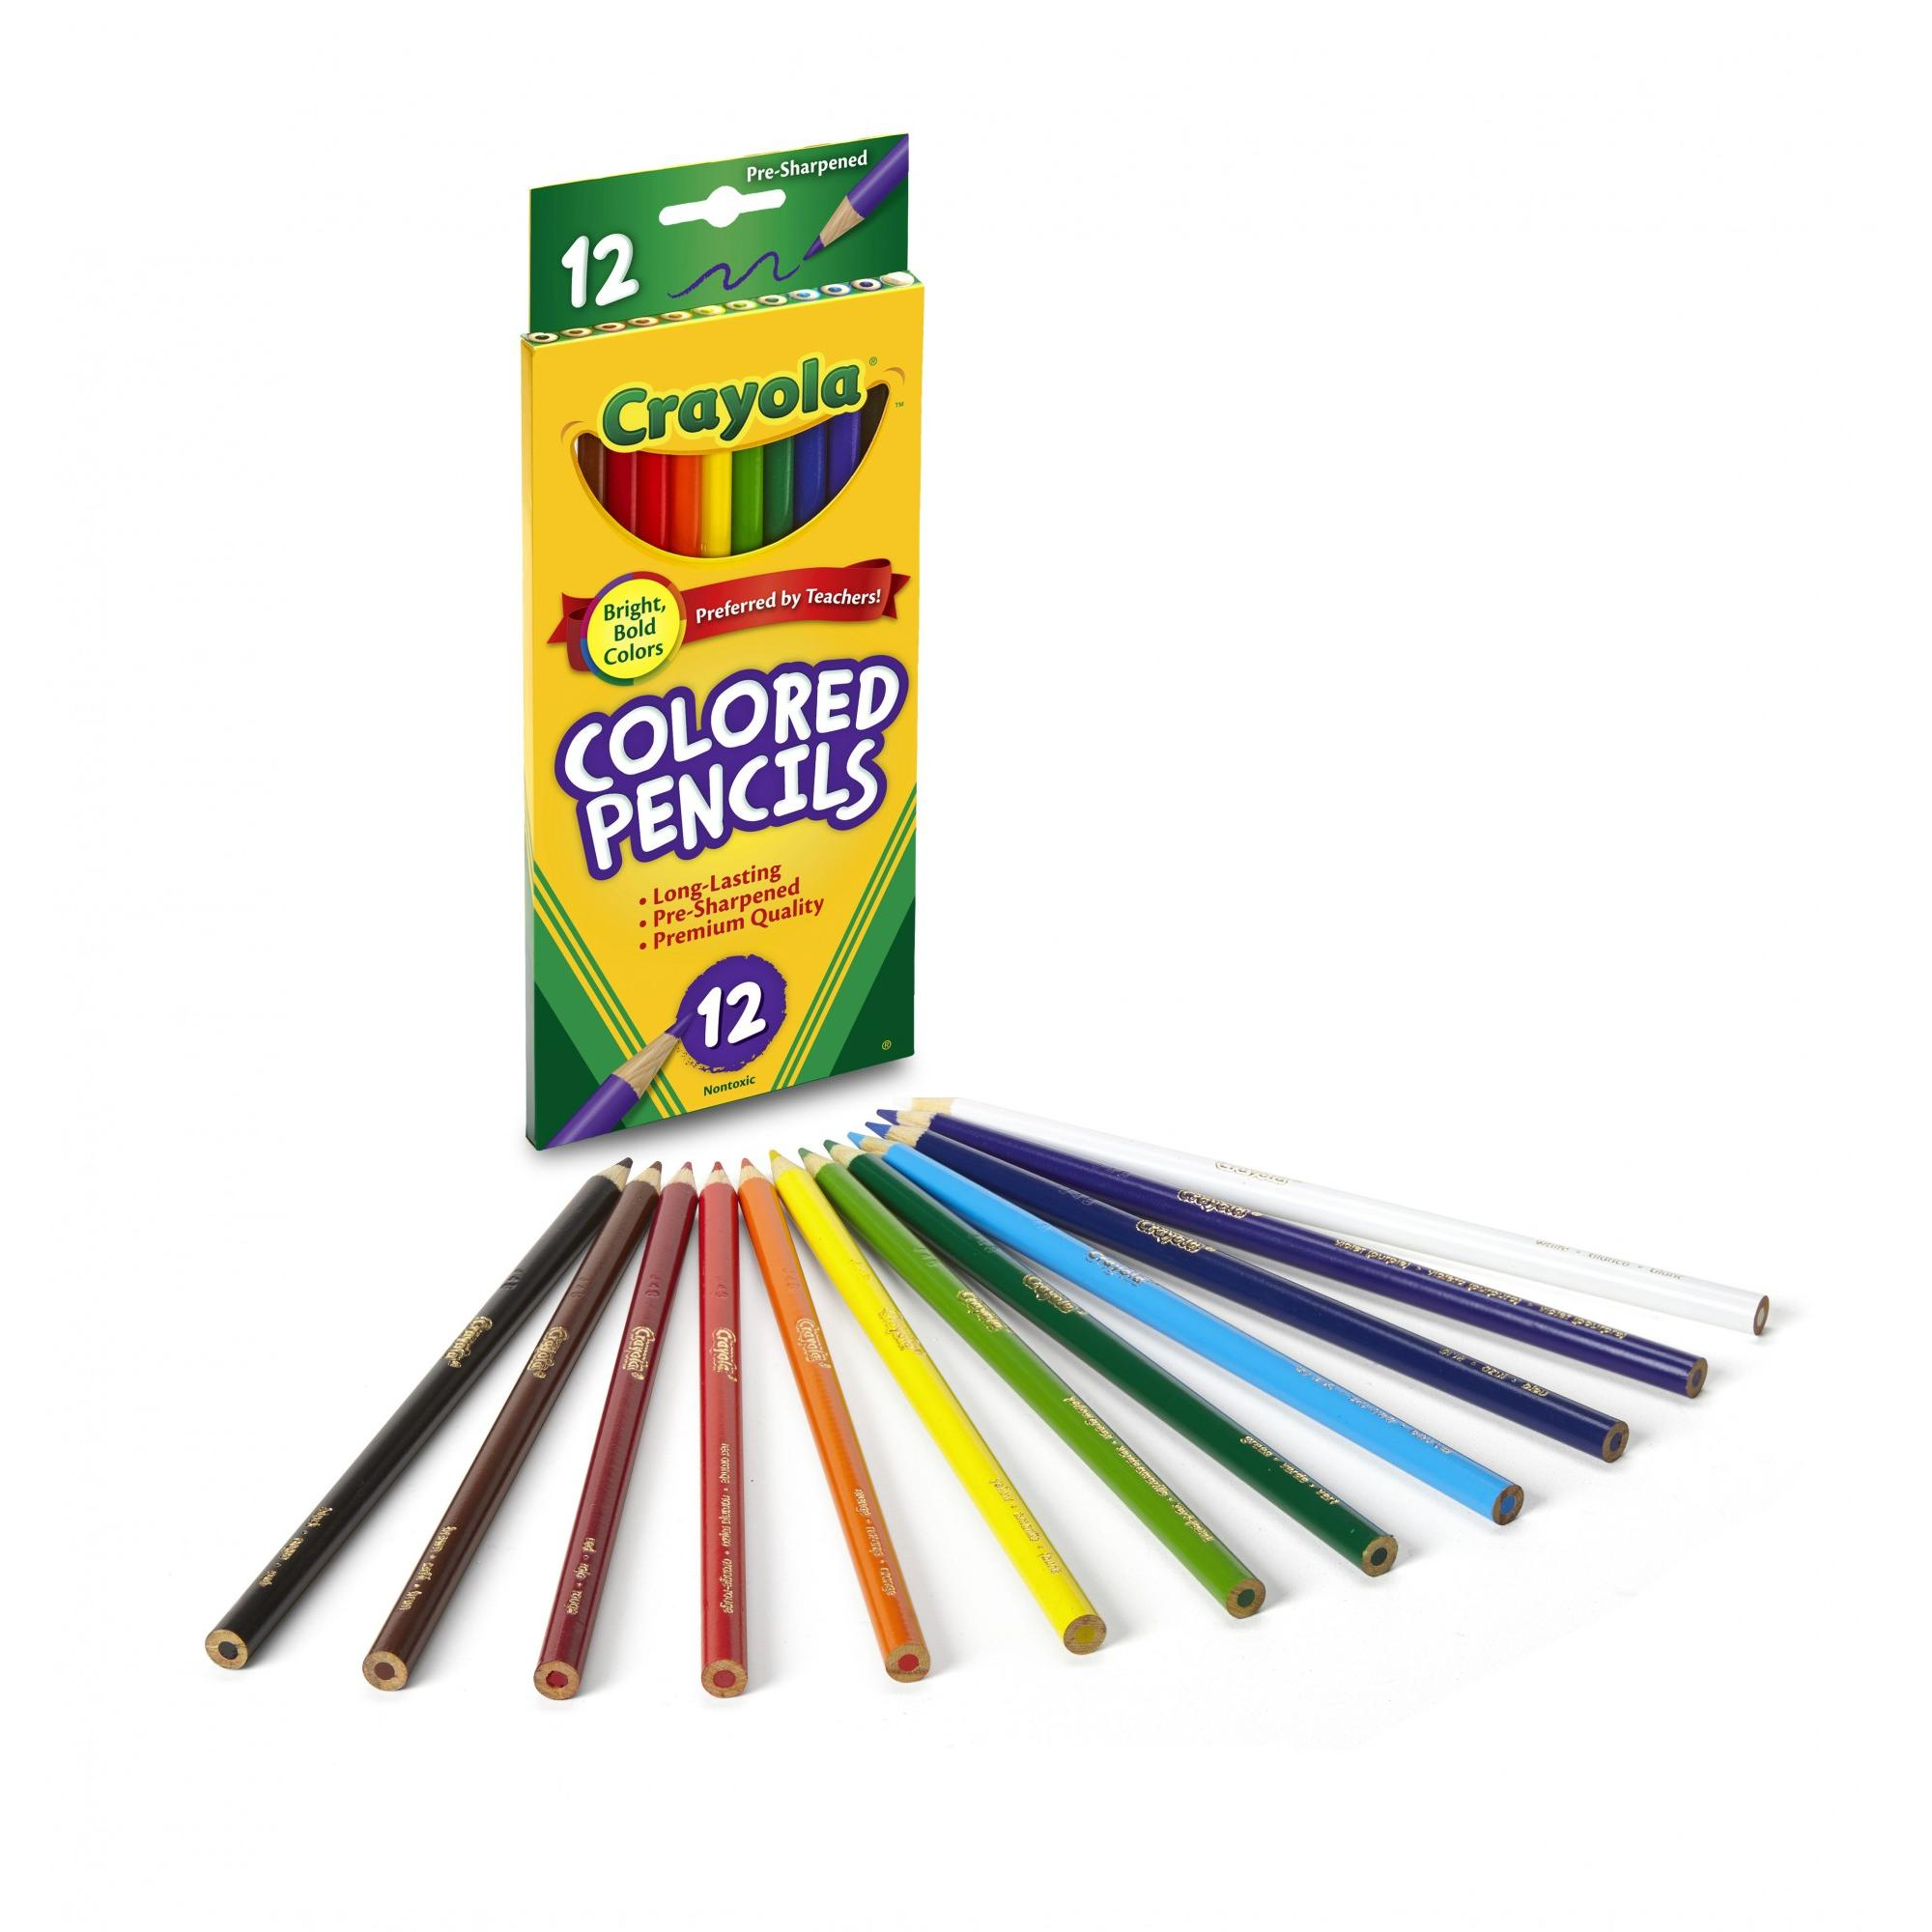 Crayola 12 Count Classic Colored Pencils